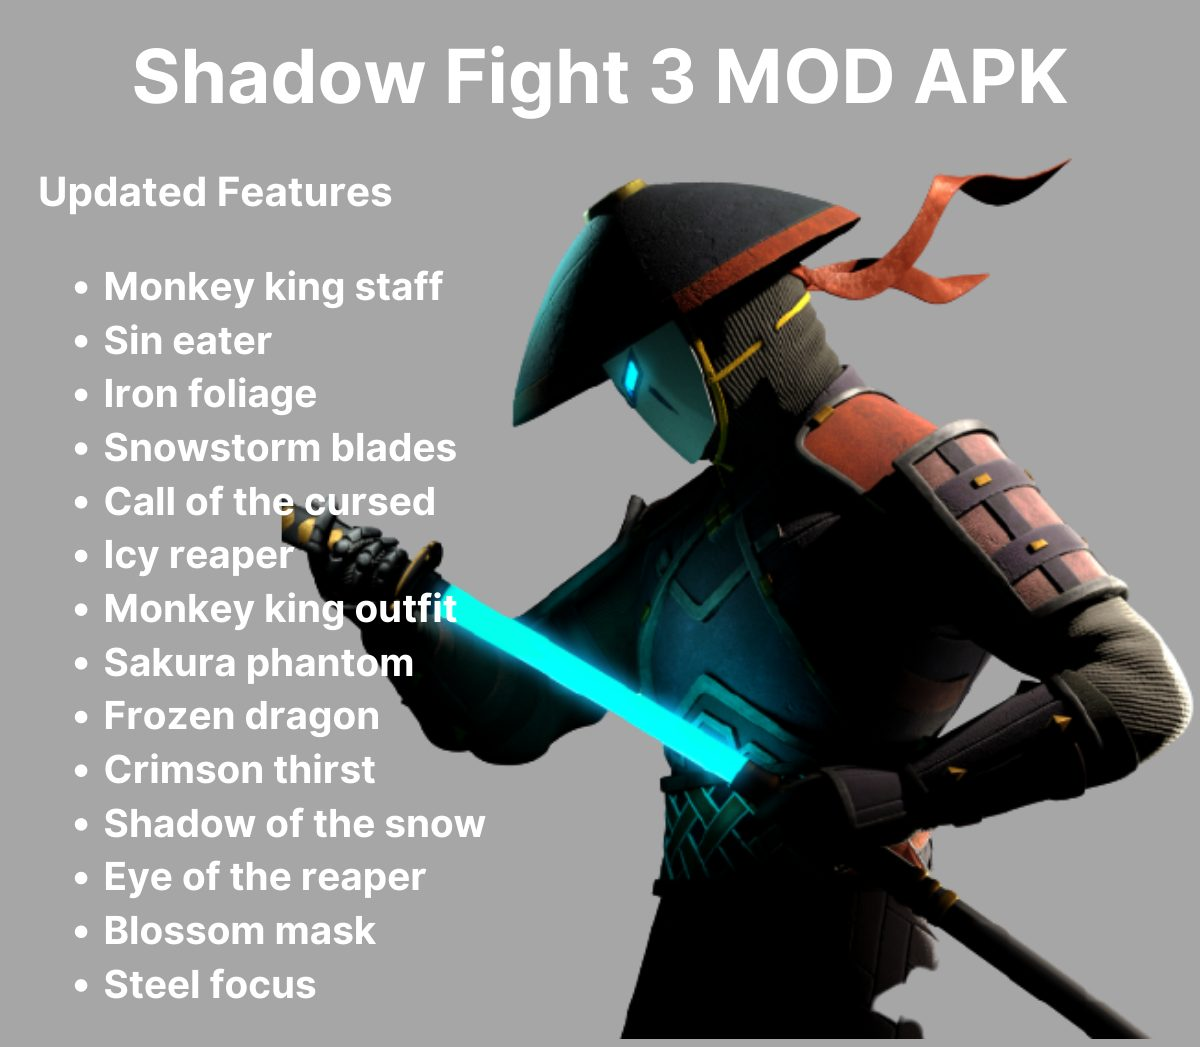 shadow fight 3 mod features